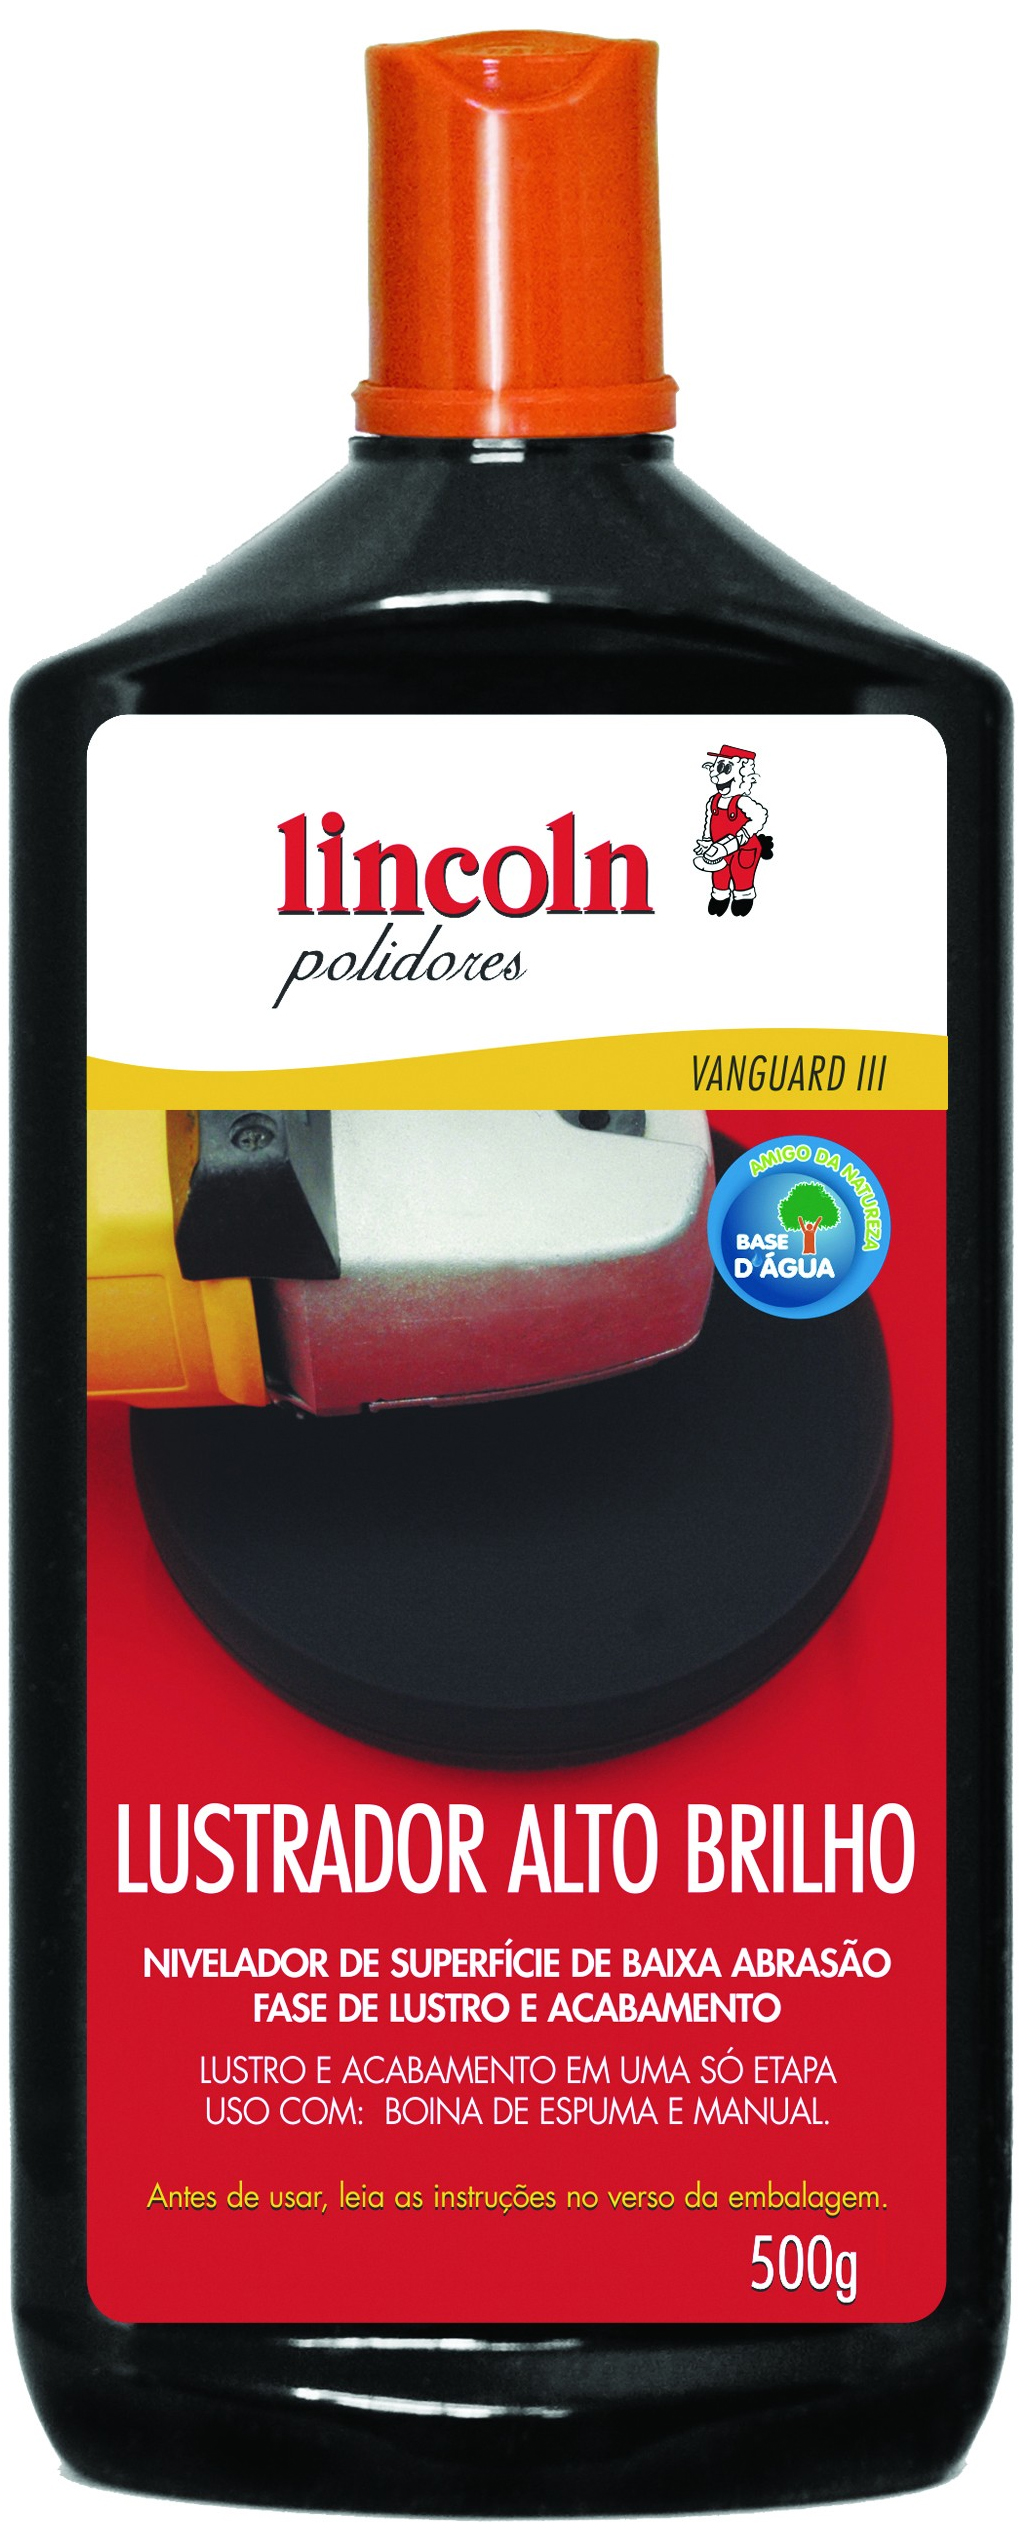 Lustrador Alto Brilho 2x1 500ml - Lincoln